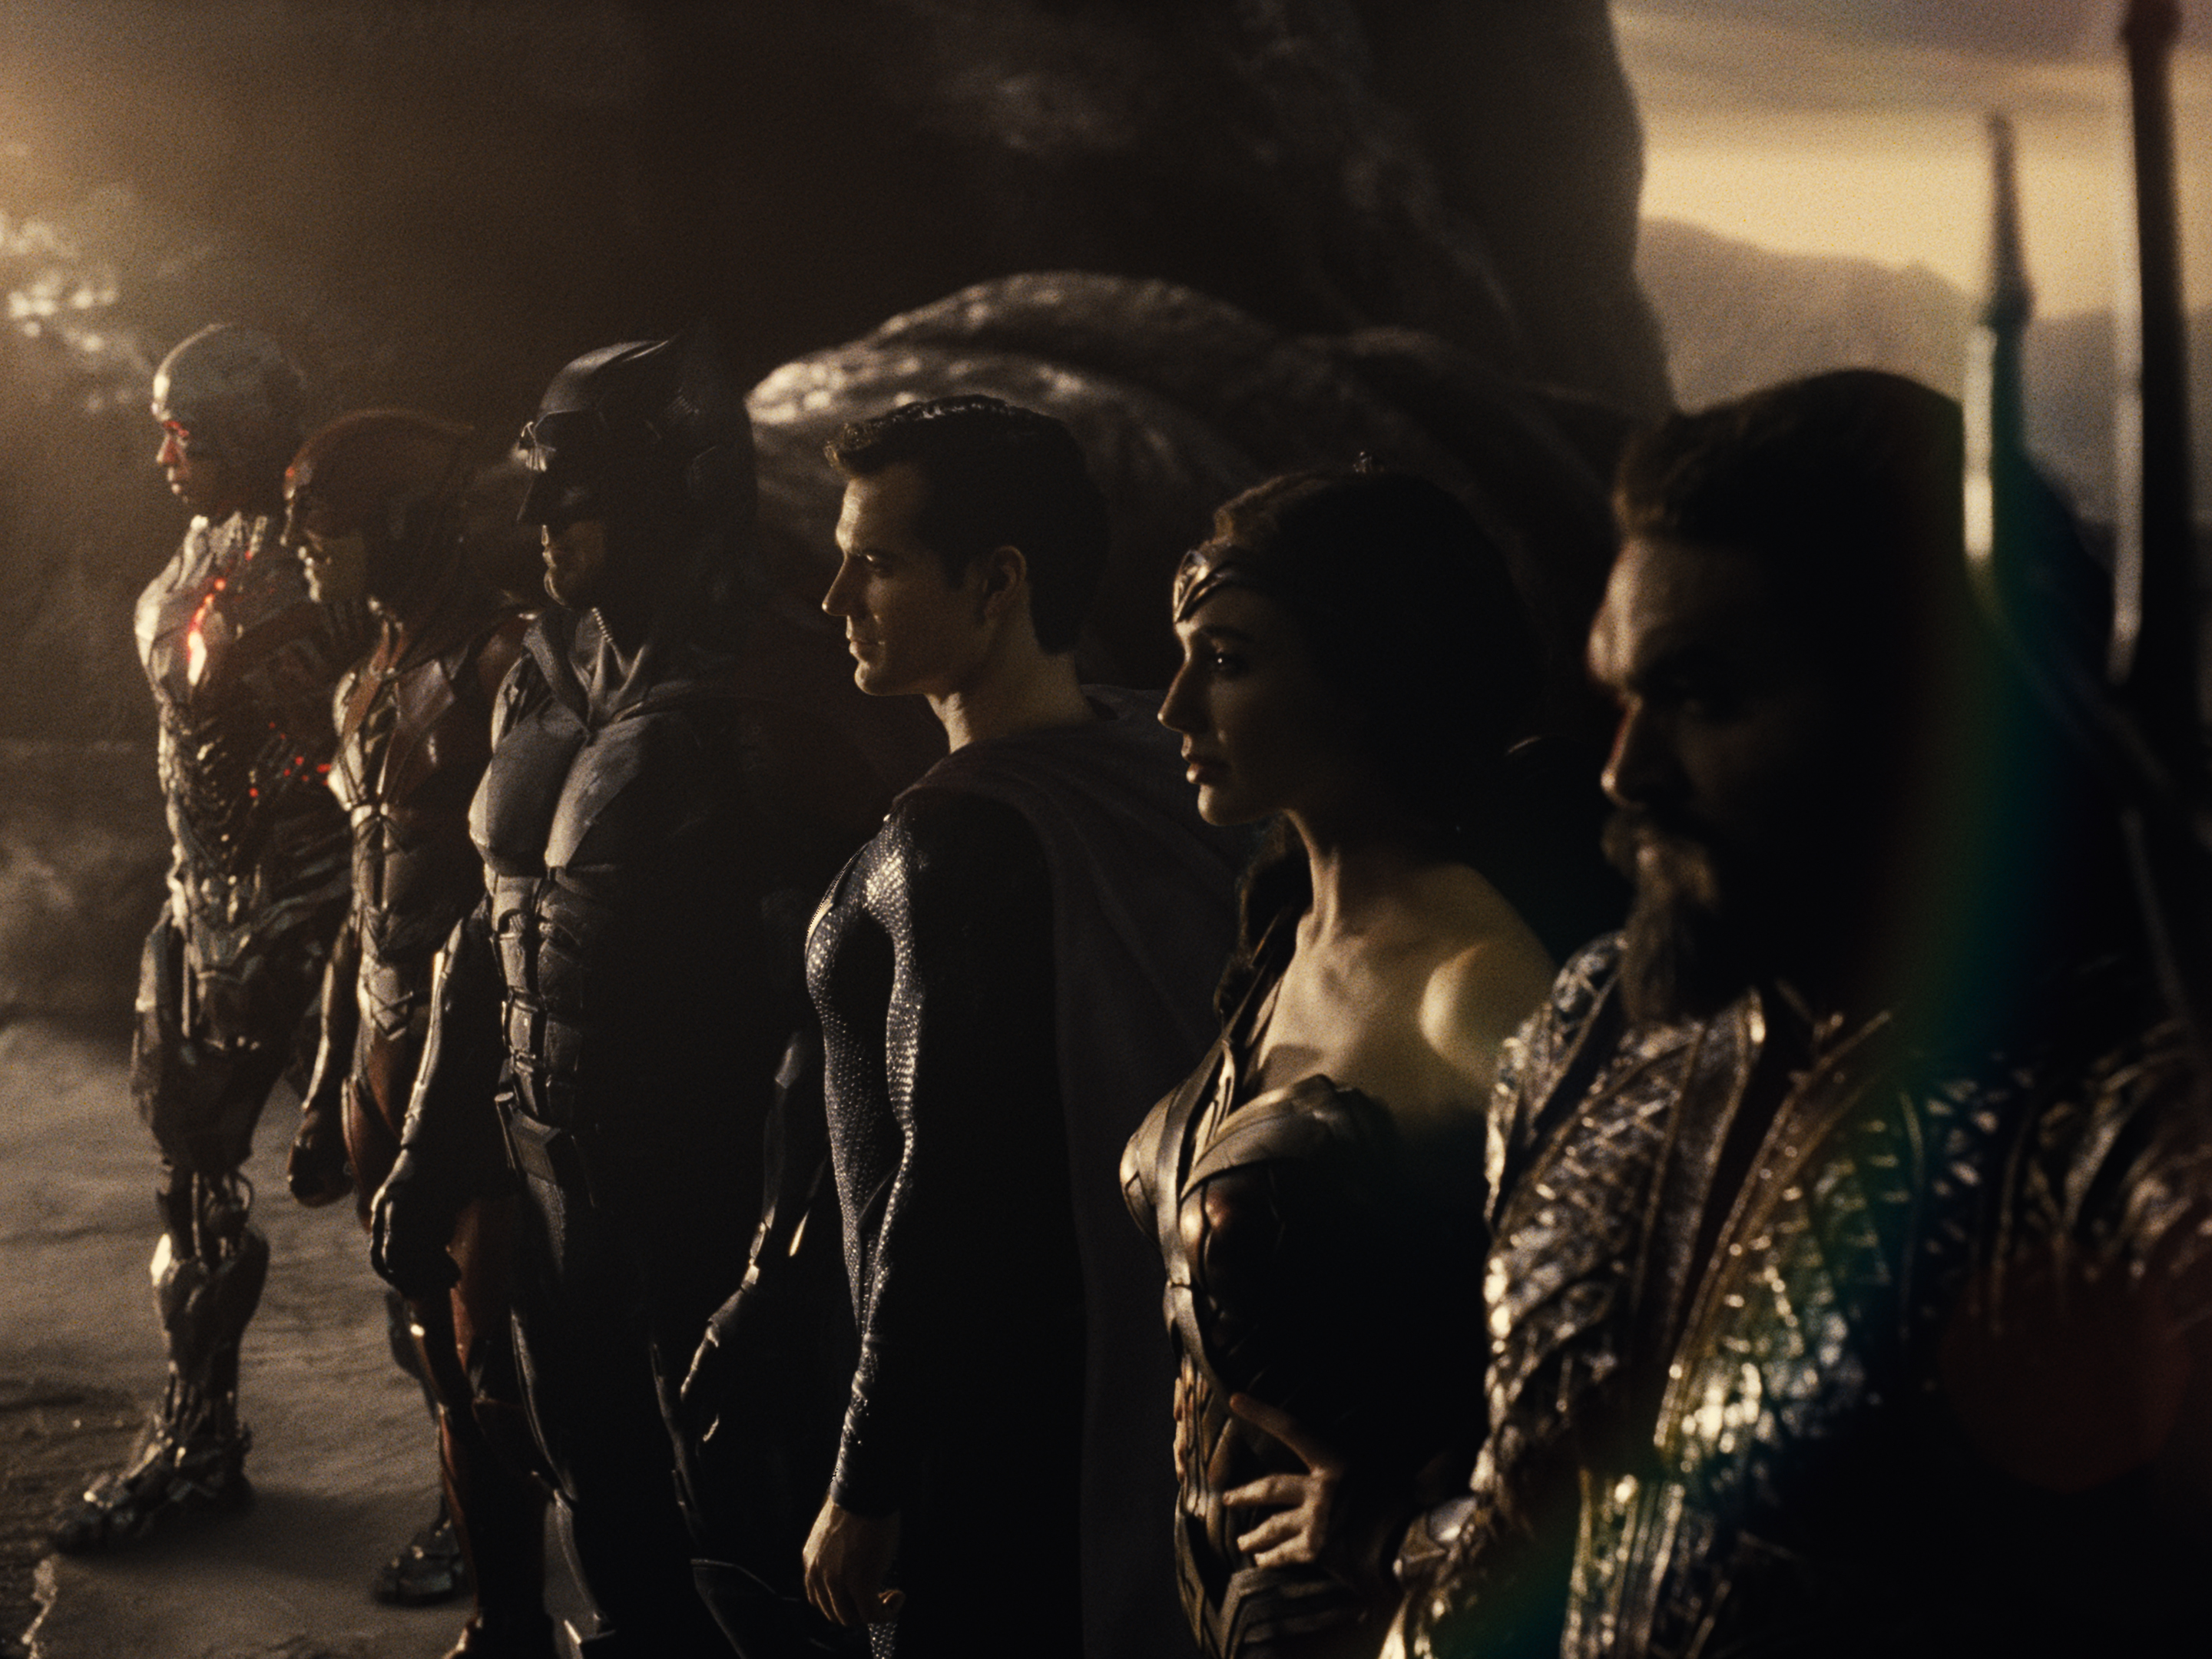 Zack Snyder's 'Justice League' Spoiler-Free Review: Fans Were Right to Fight for It